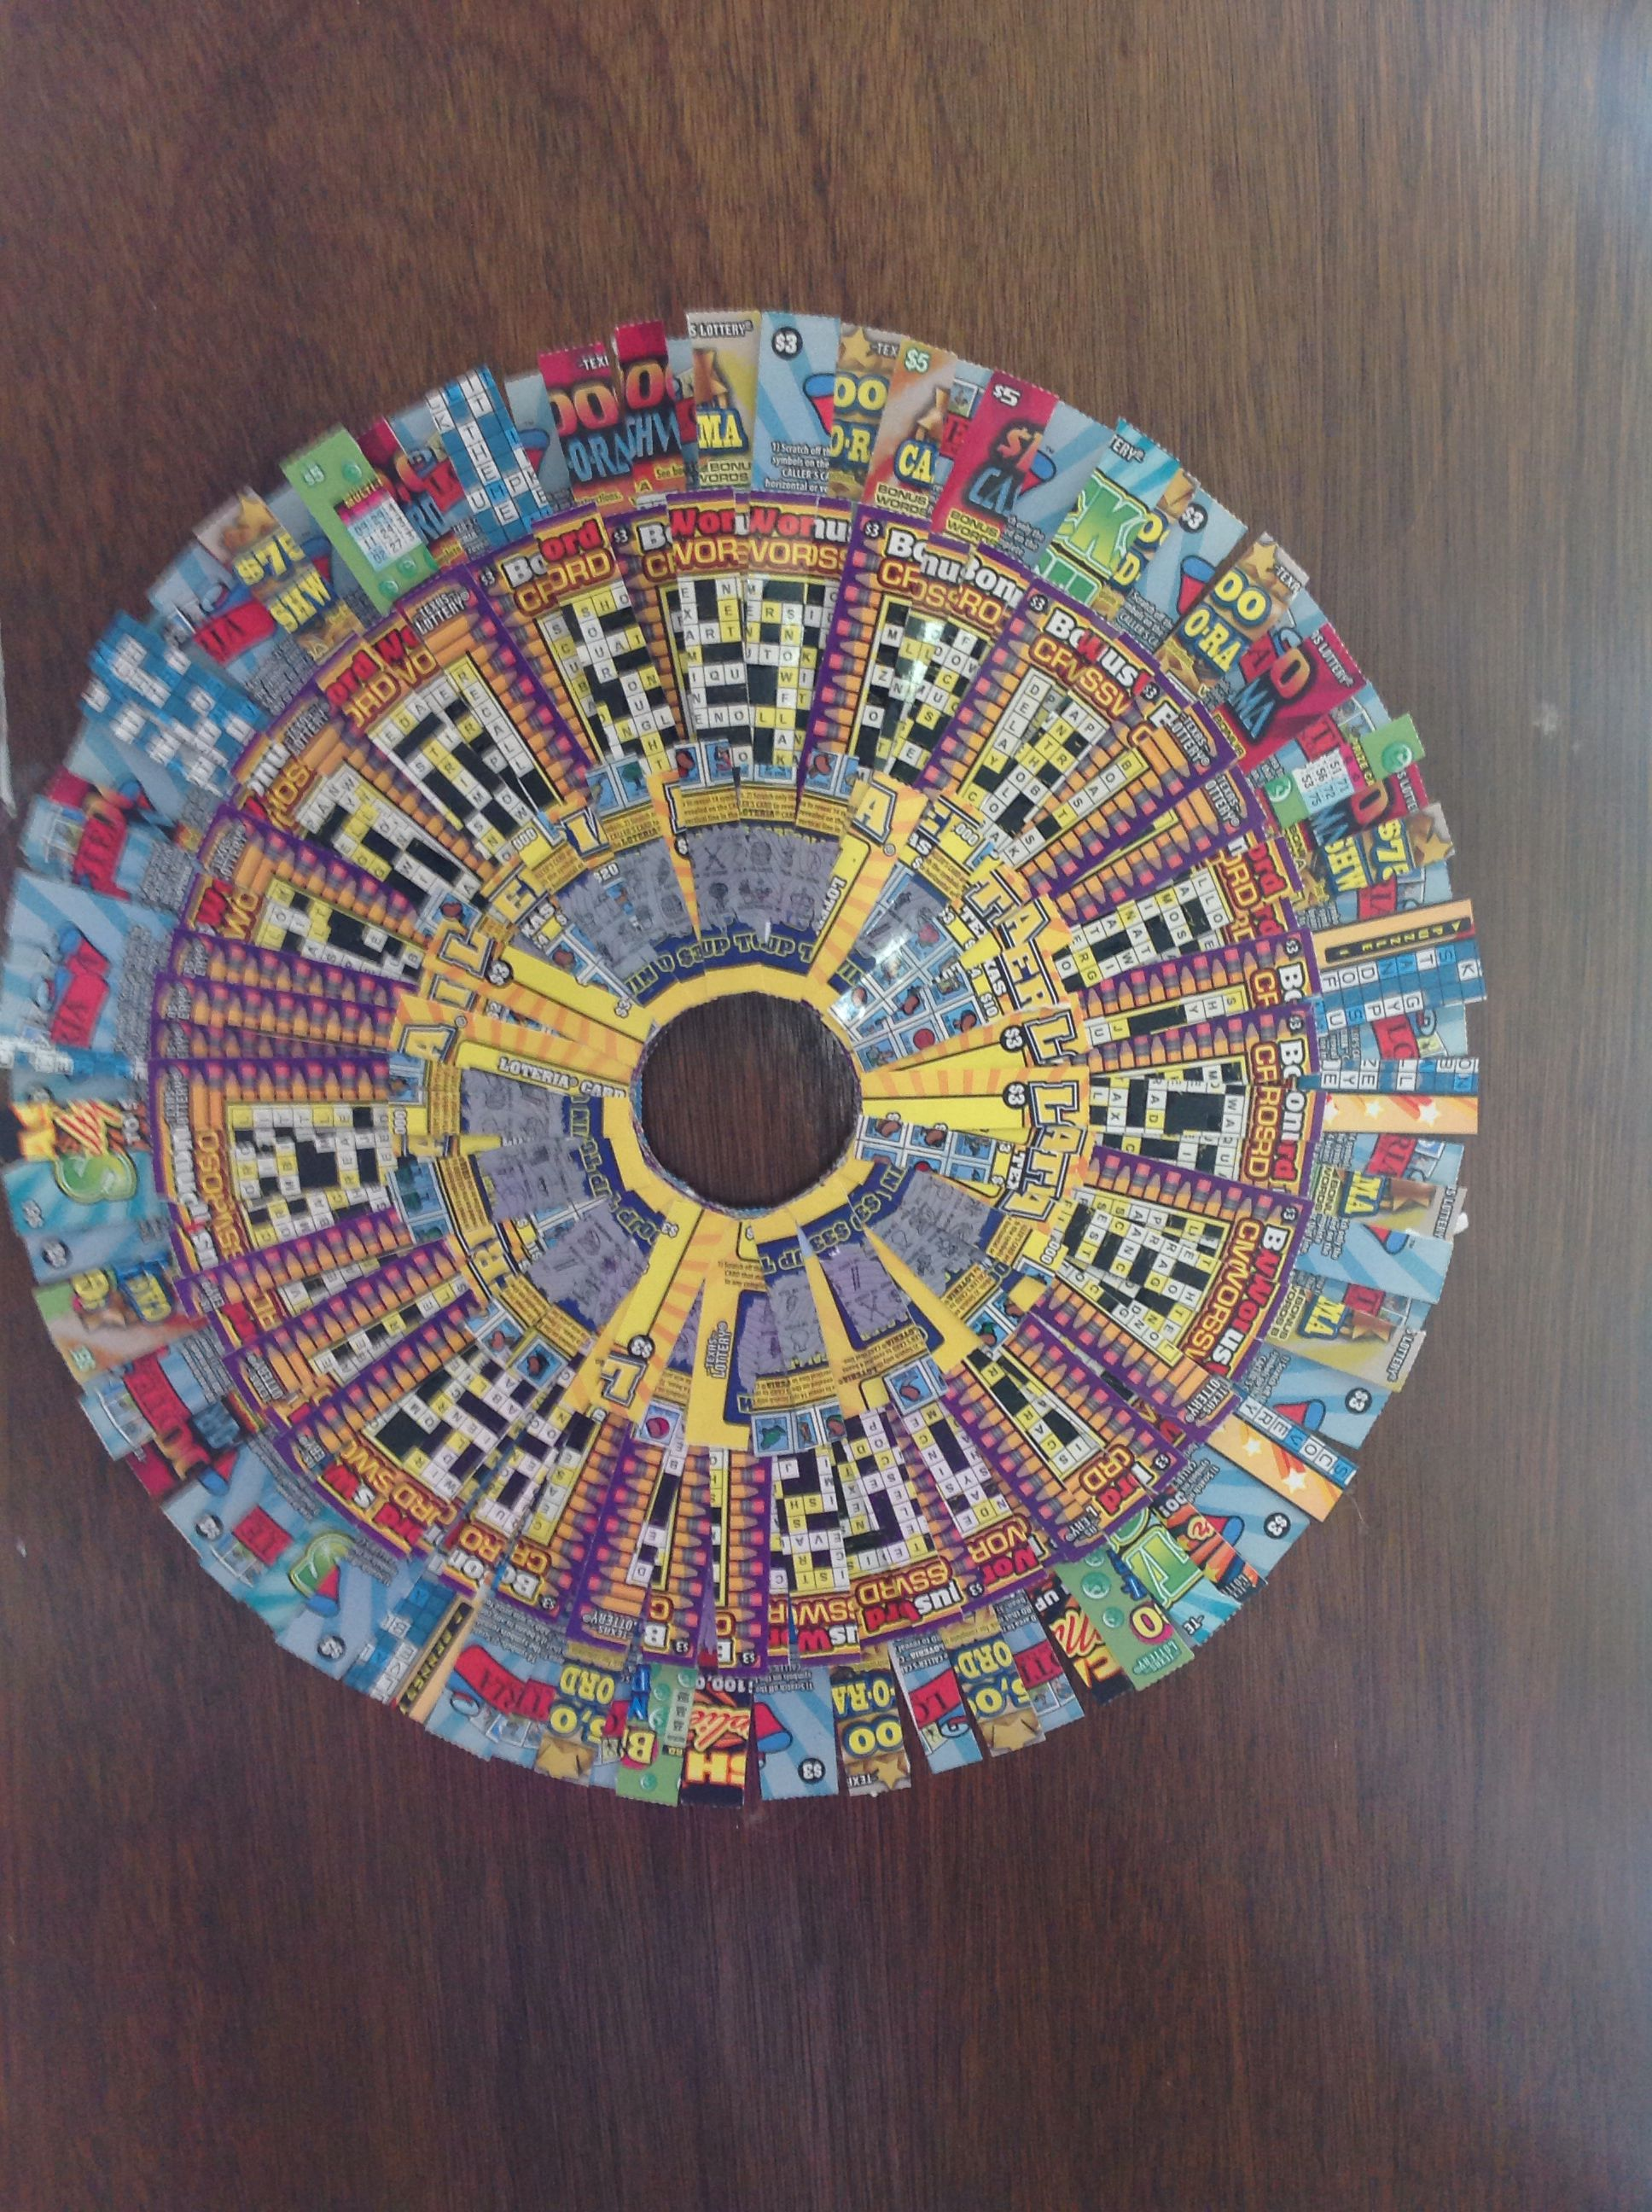 26++ Ny scratch off games with best odds info